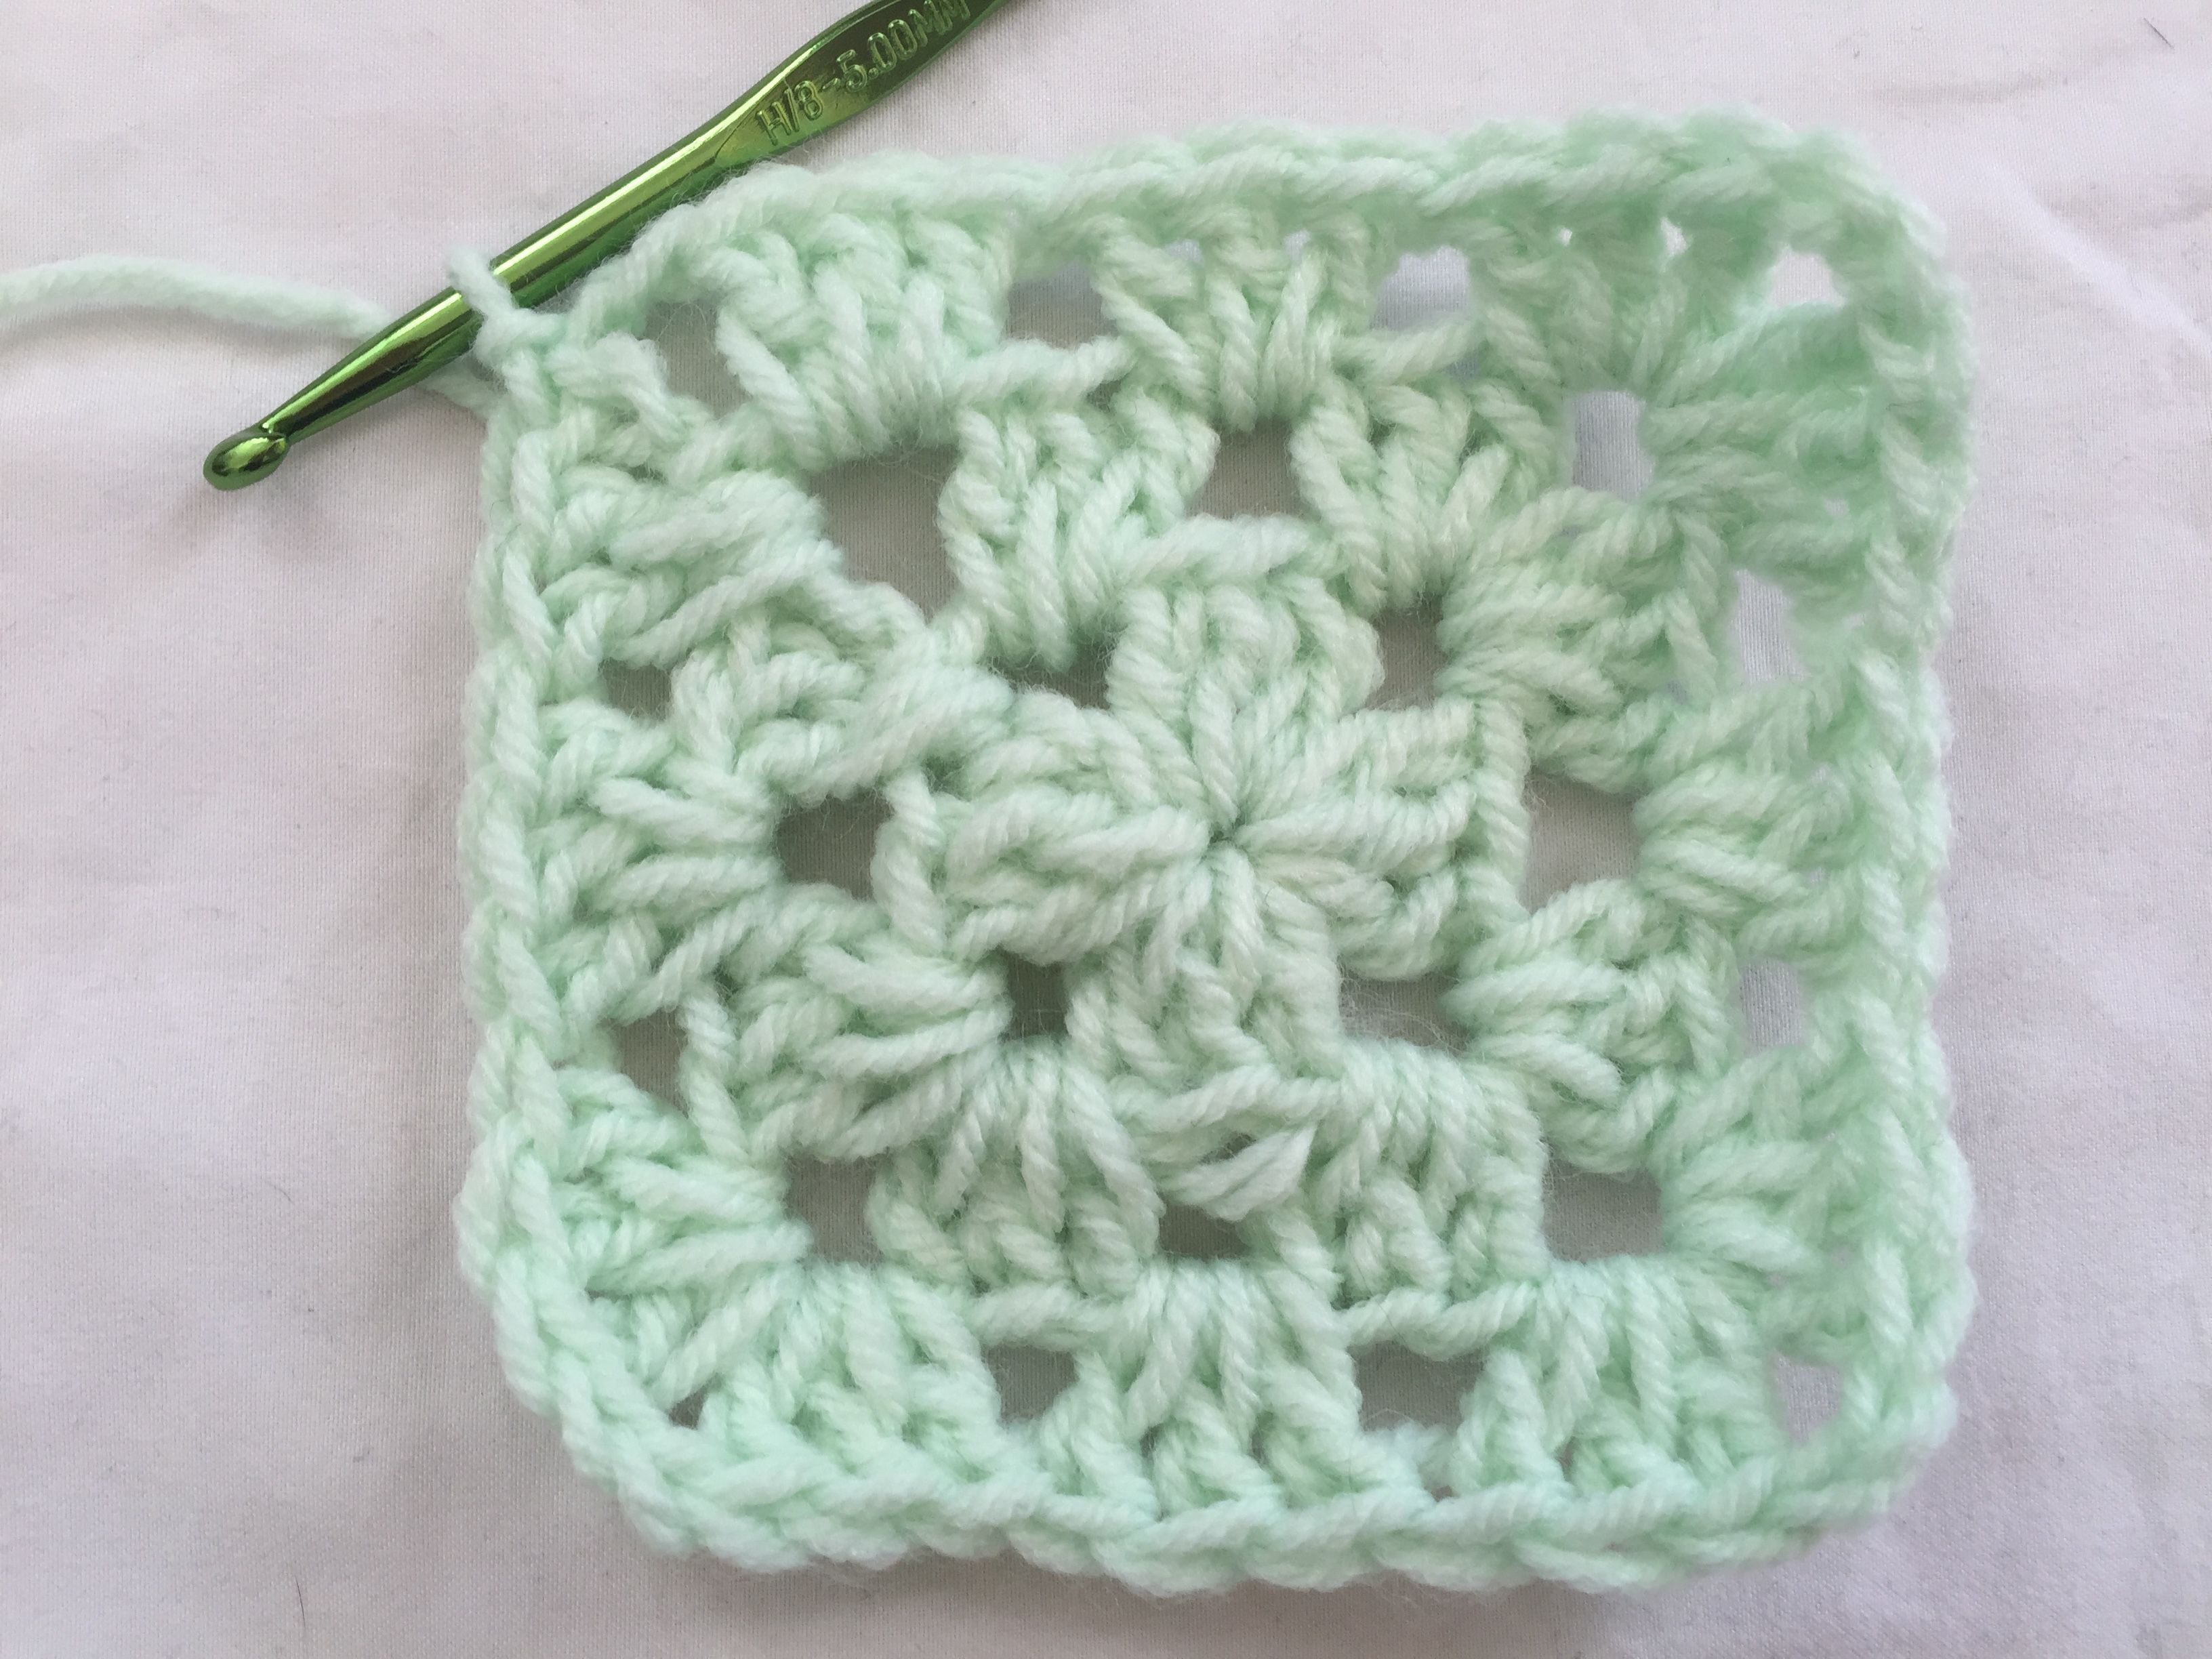 Luxury Easy Free Granny Square Crochet Patterns Granny Square for Beginners Of Marvelous 46 Pics Granny Square for Beginners